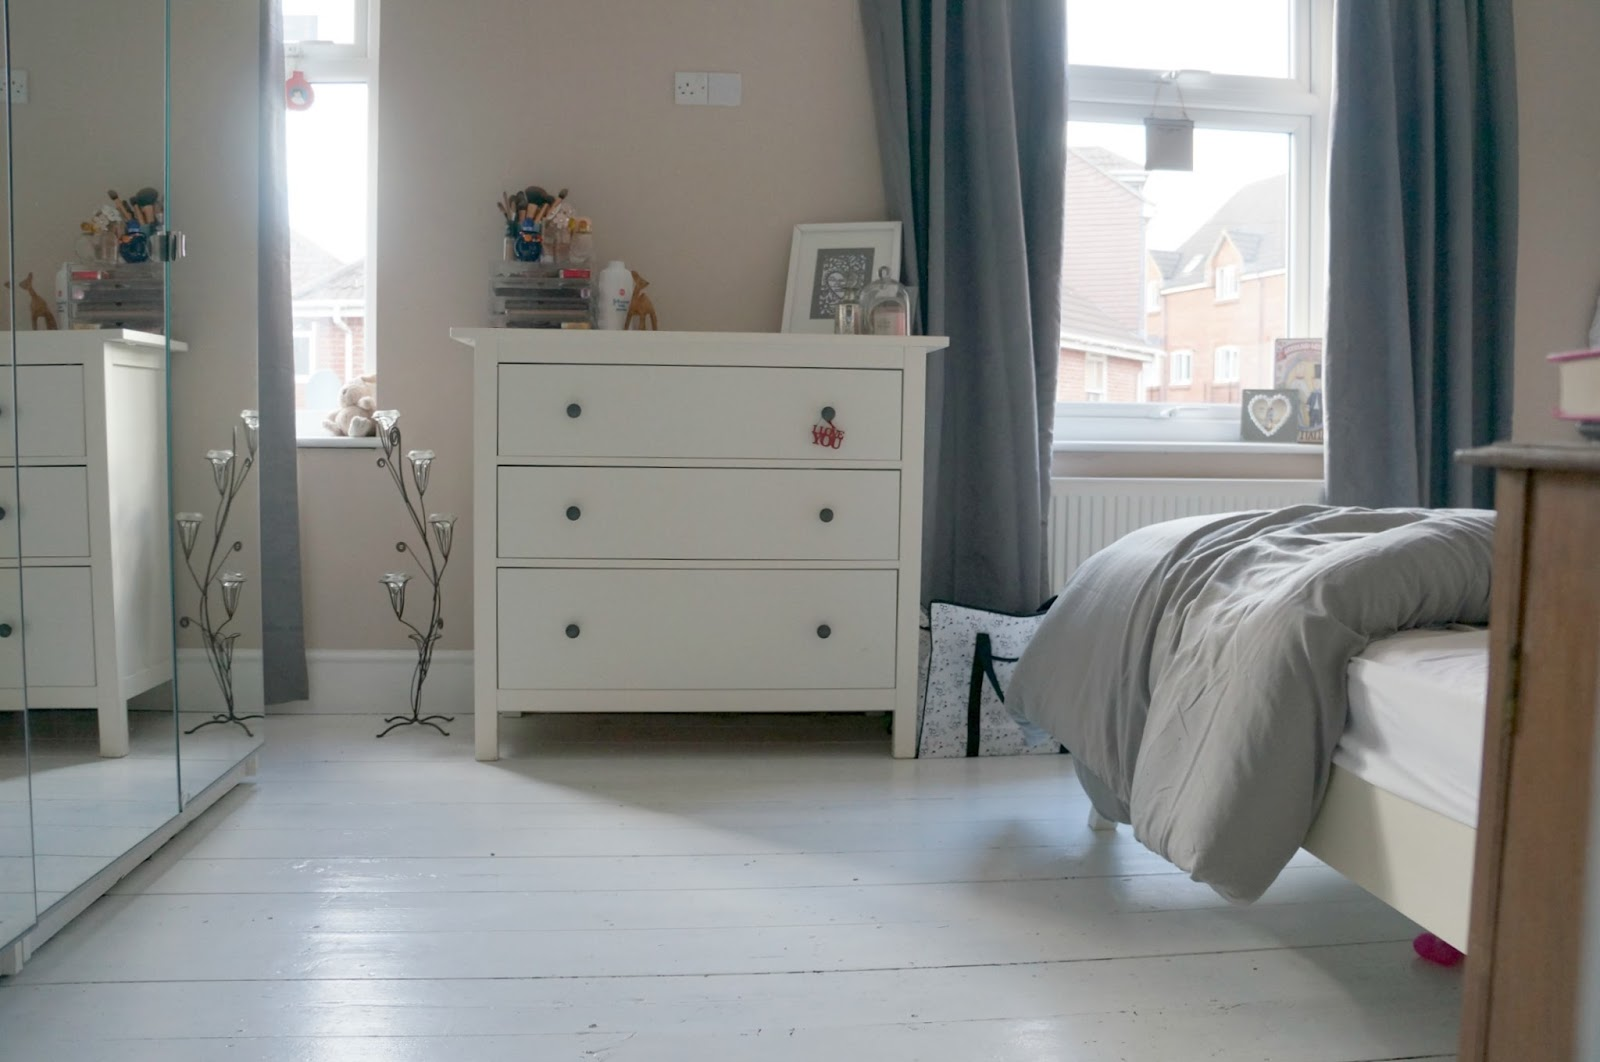 Our White Floorboards: How we achieved them and looking after them.